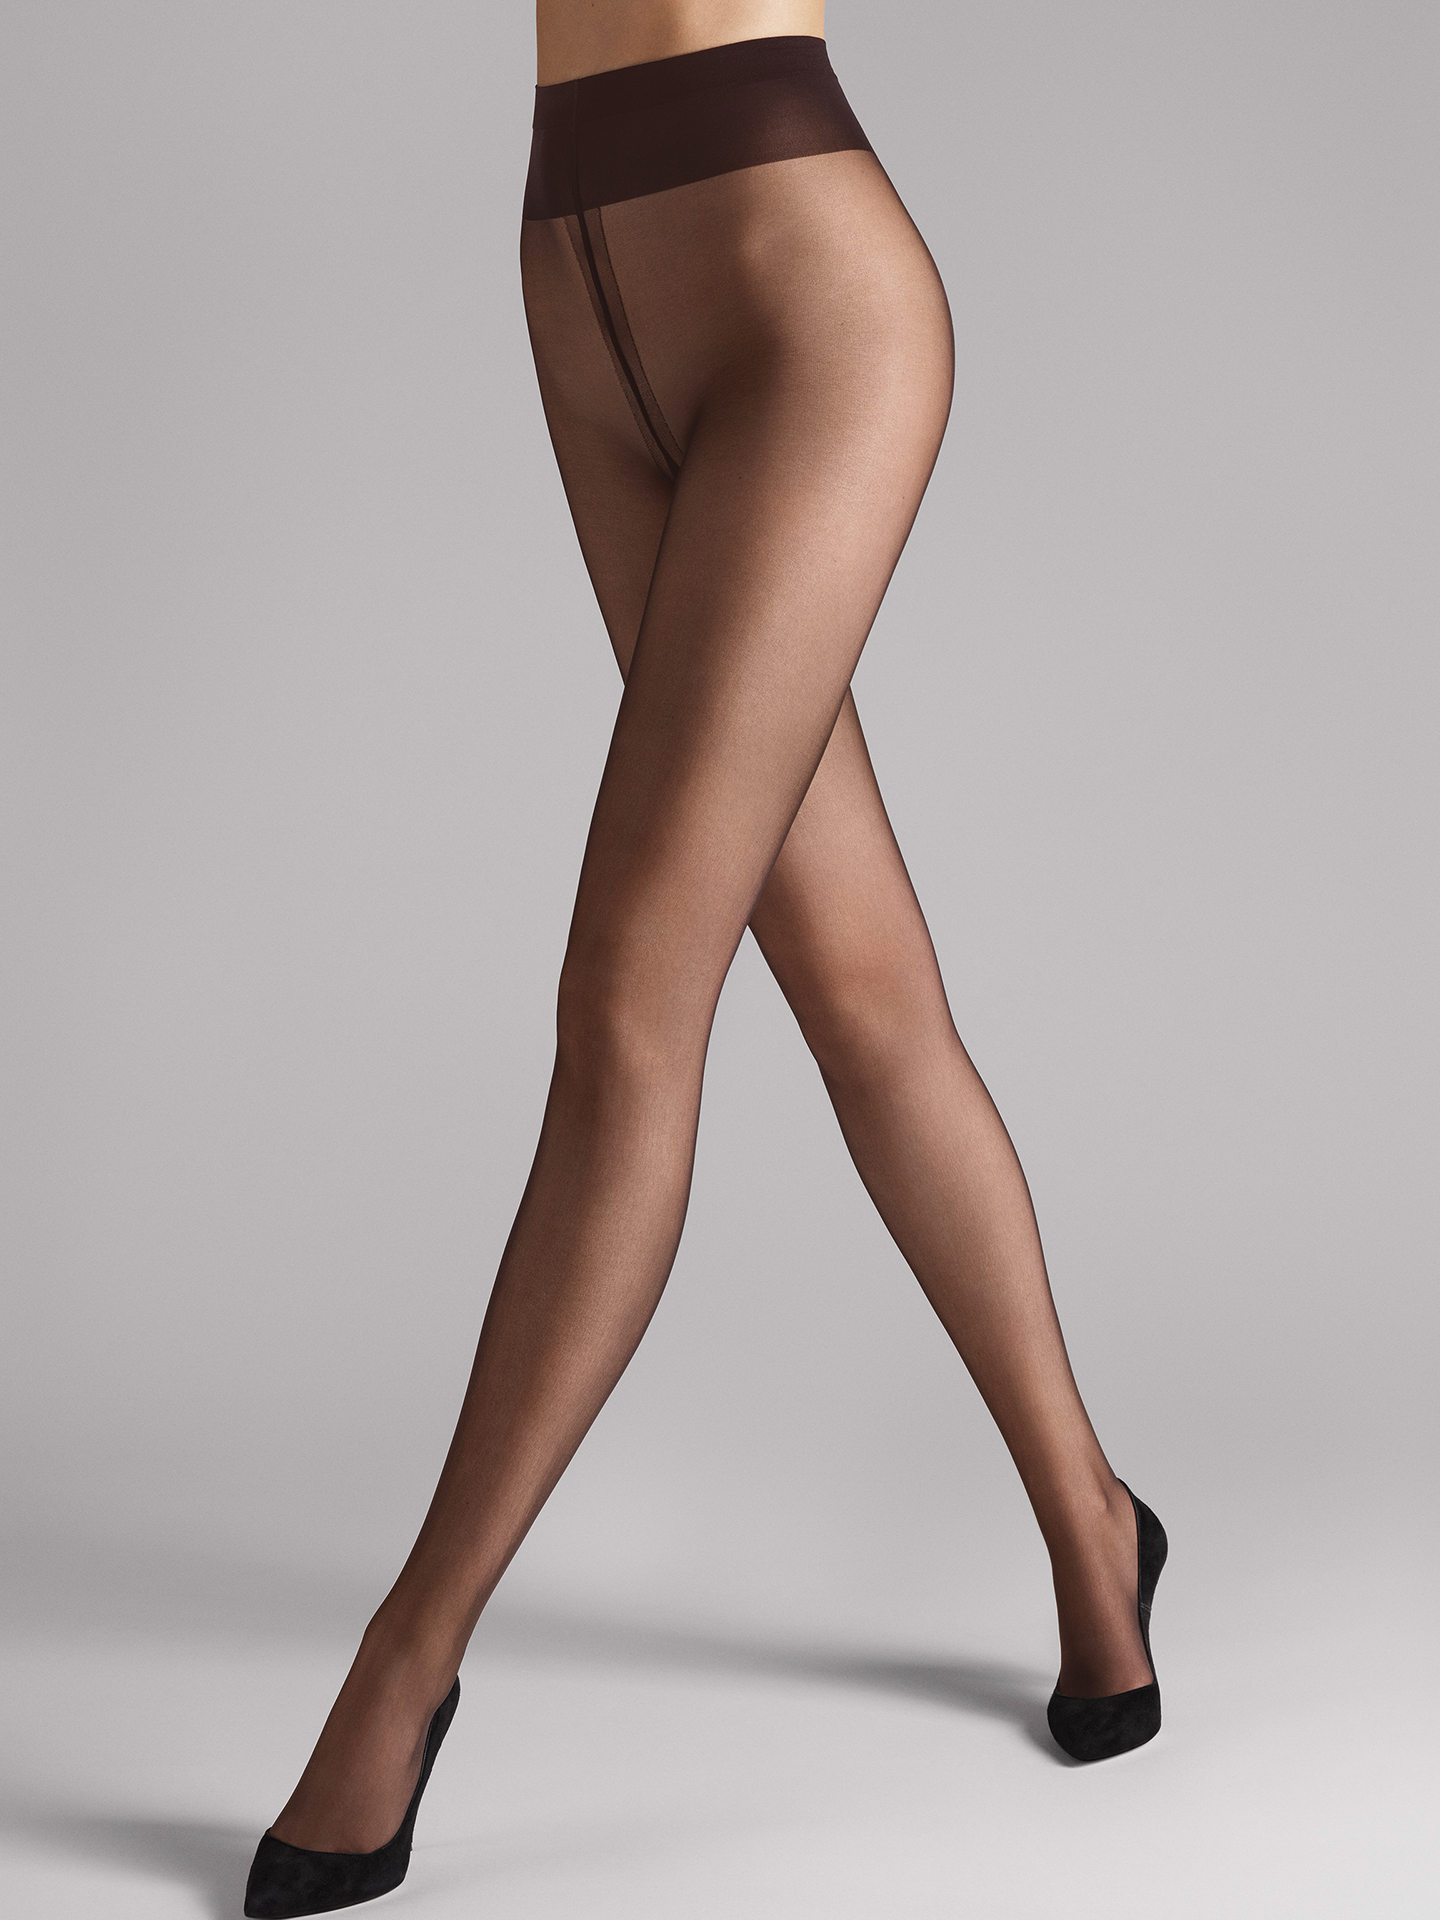 Wolford Apparel & Accessories > Clothing > Collant Individual 10 - 4250 - M